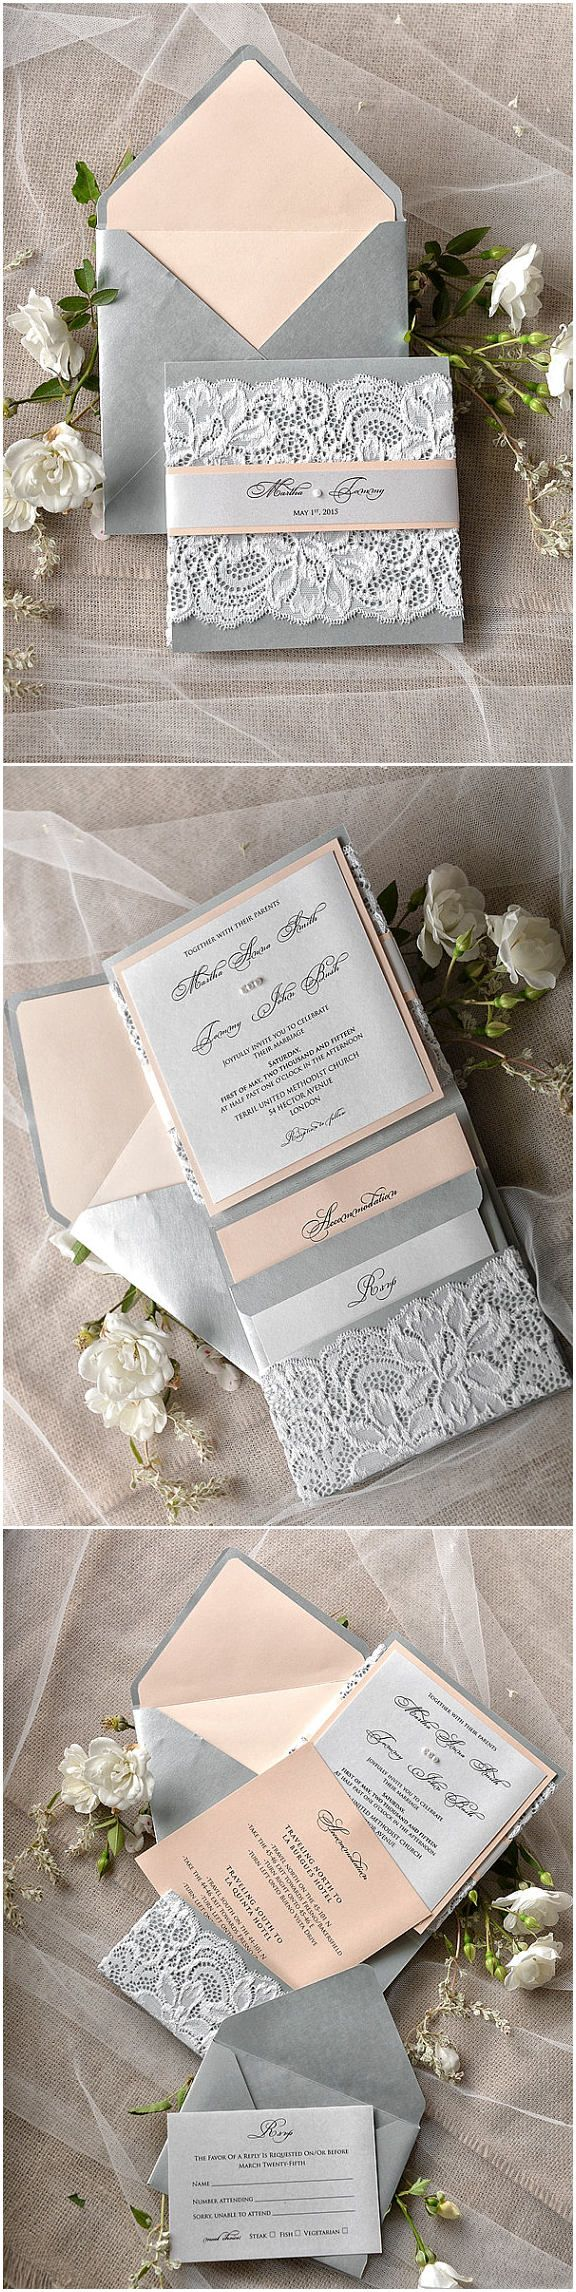 40 Best Invitations Images On Pinterest Bridal Invitations Card